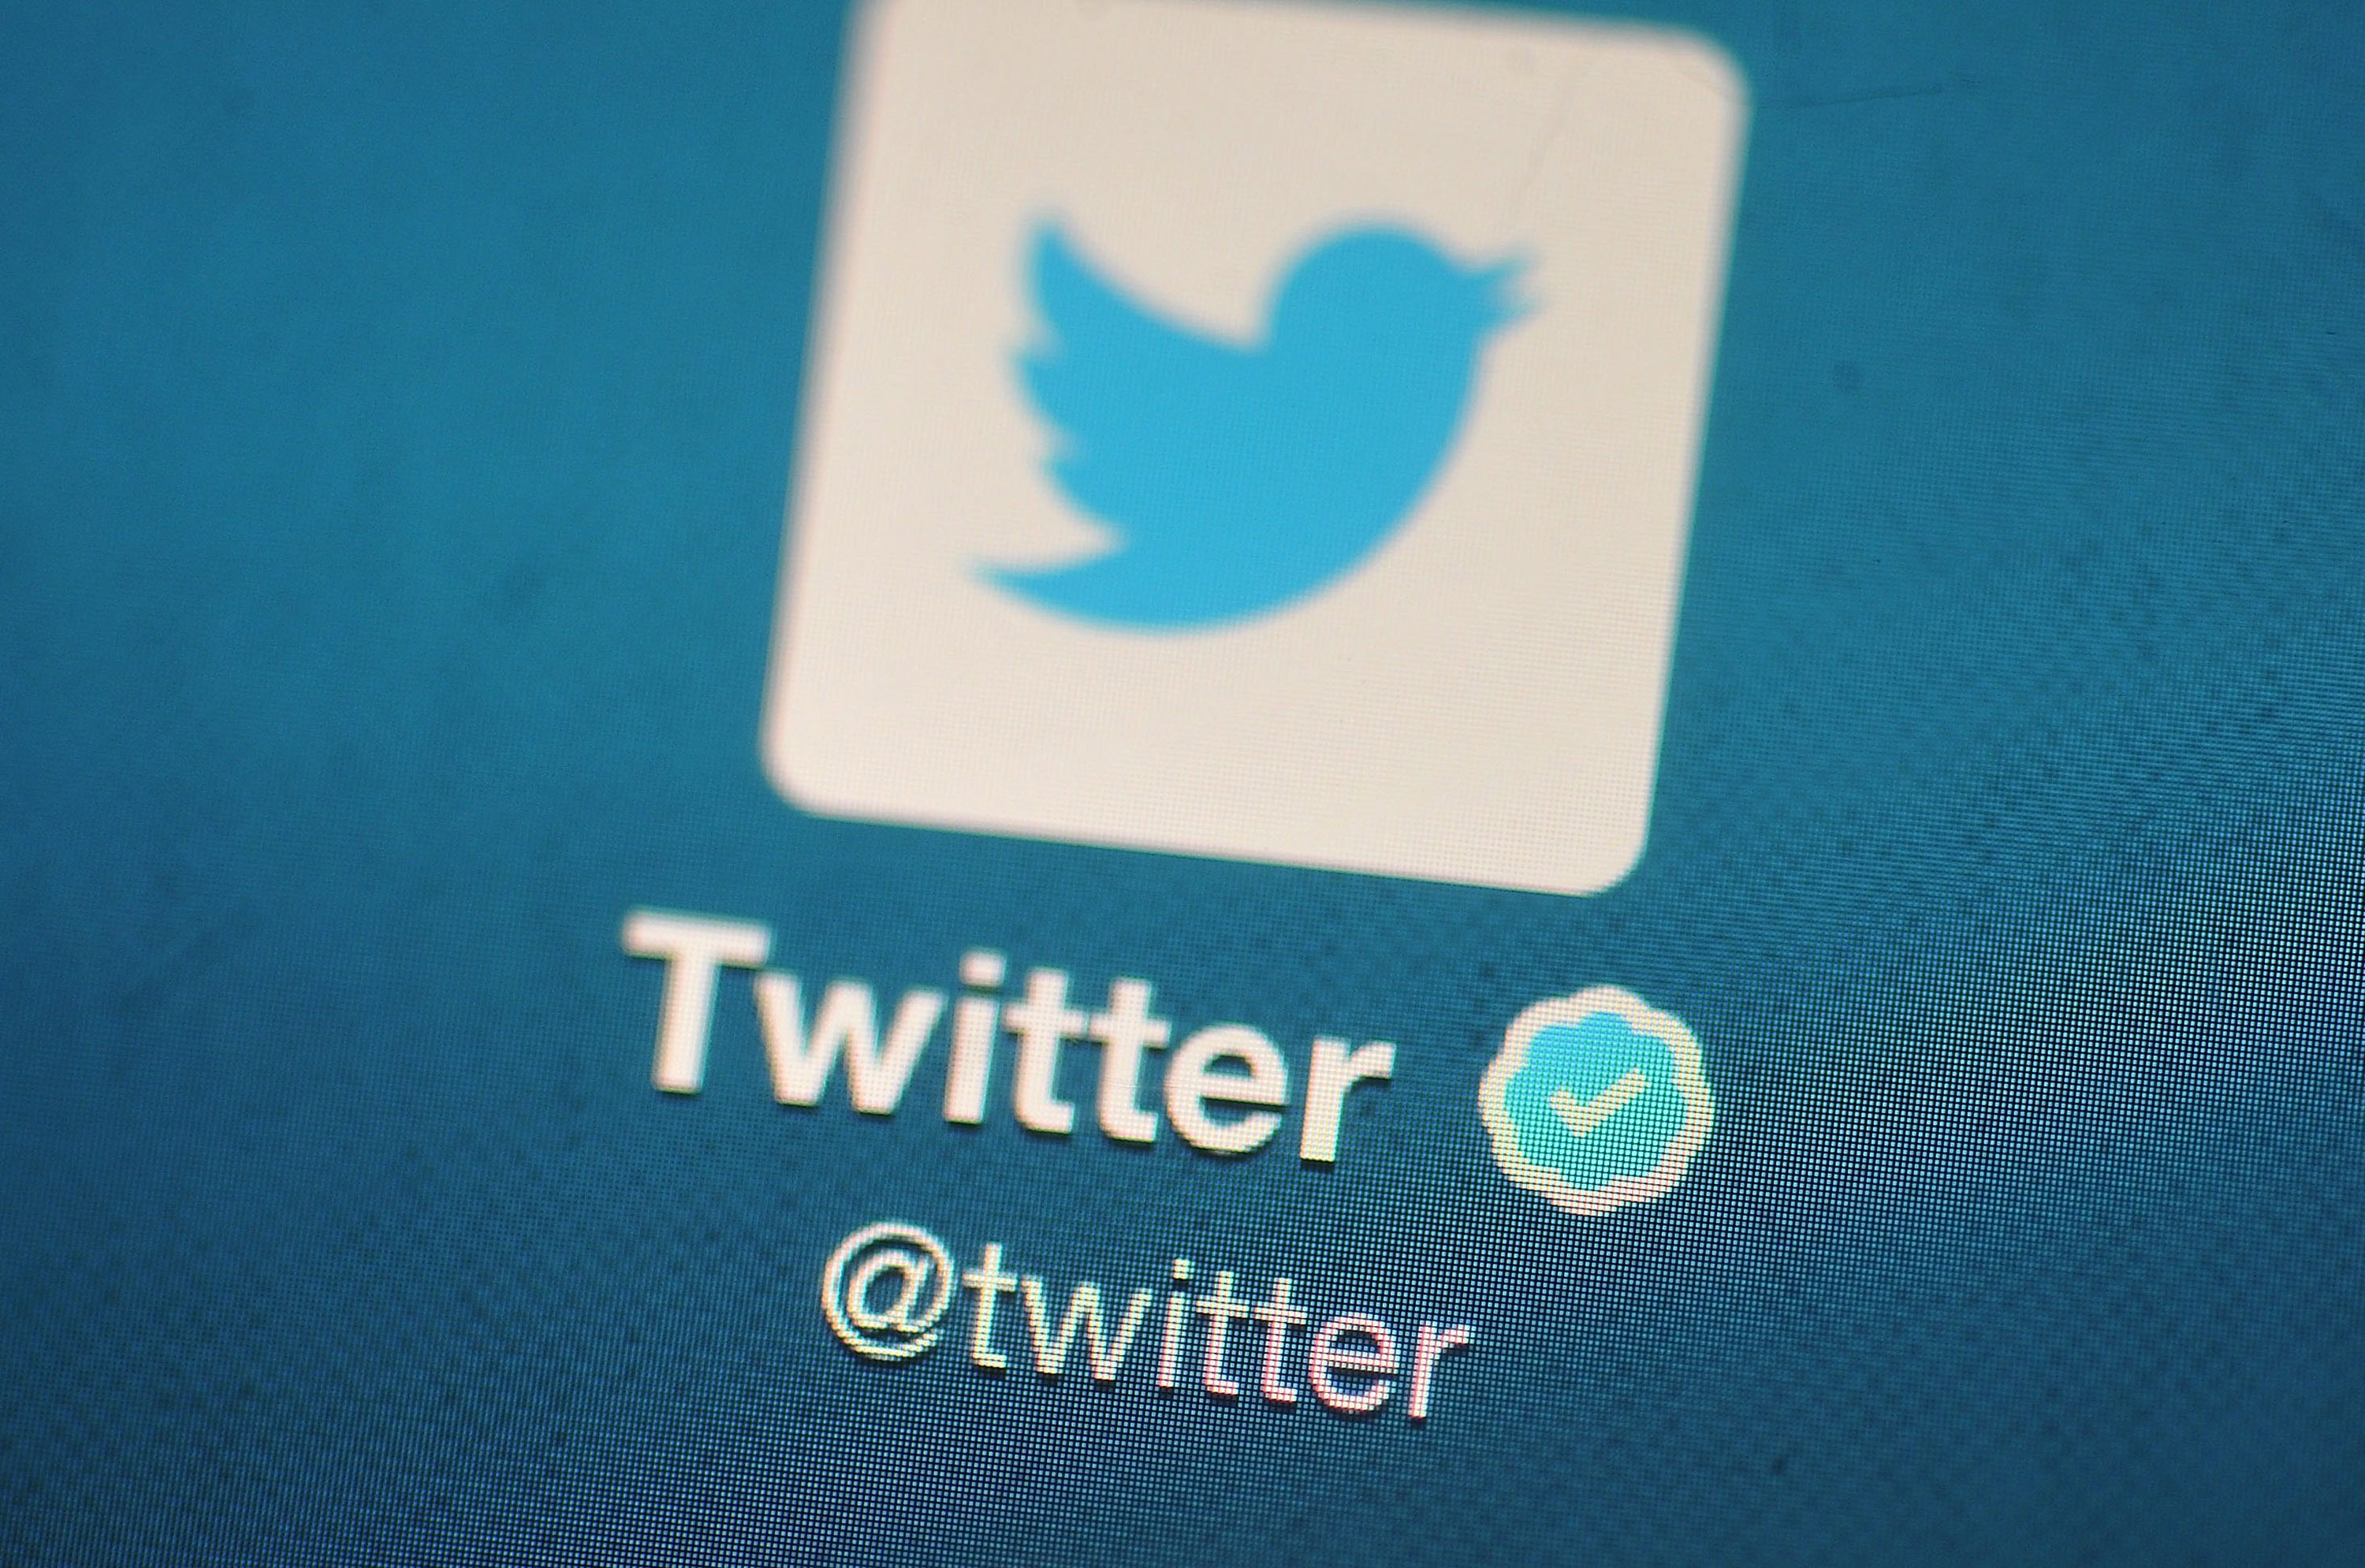 Twitter opens its conversion tracking tool to all advertisers using Promoted Tweets